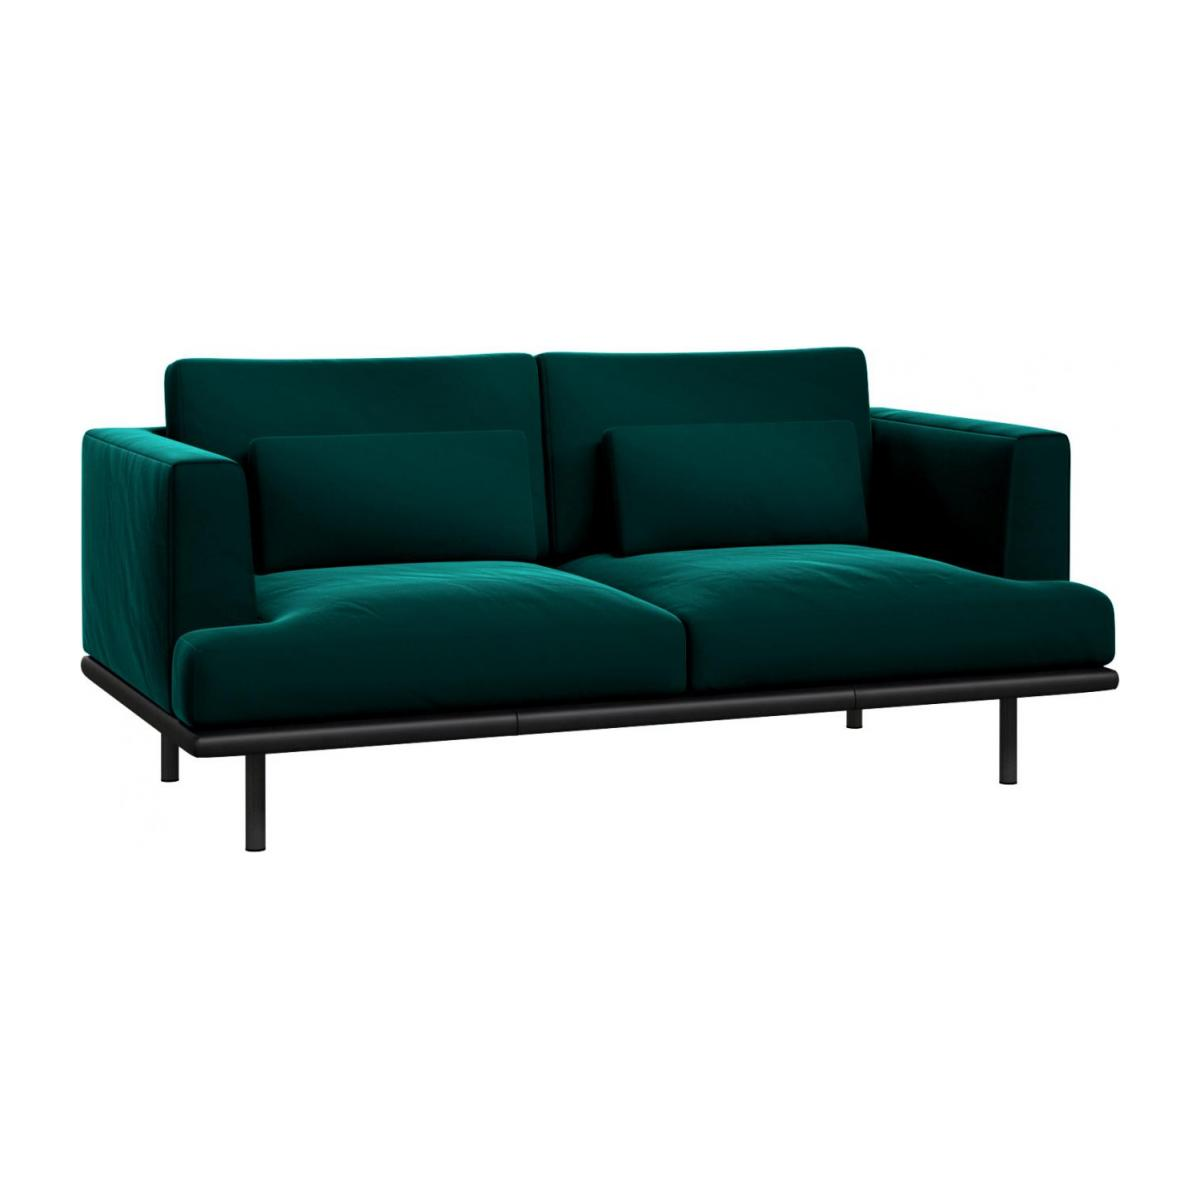 2 seater sofa in Super Velvet fabric, petrol blue with base in black leather n°1